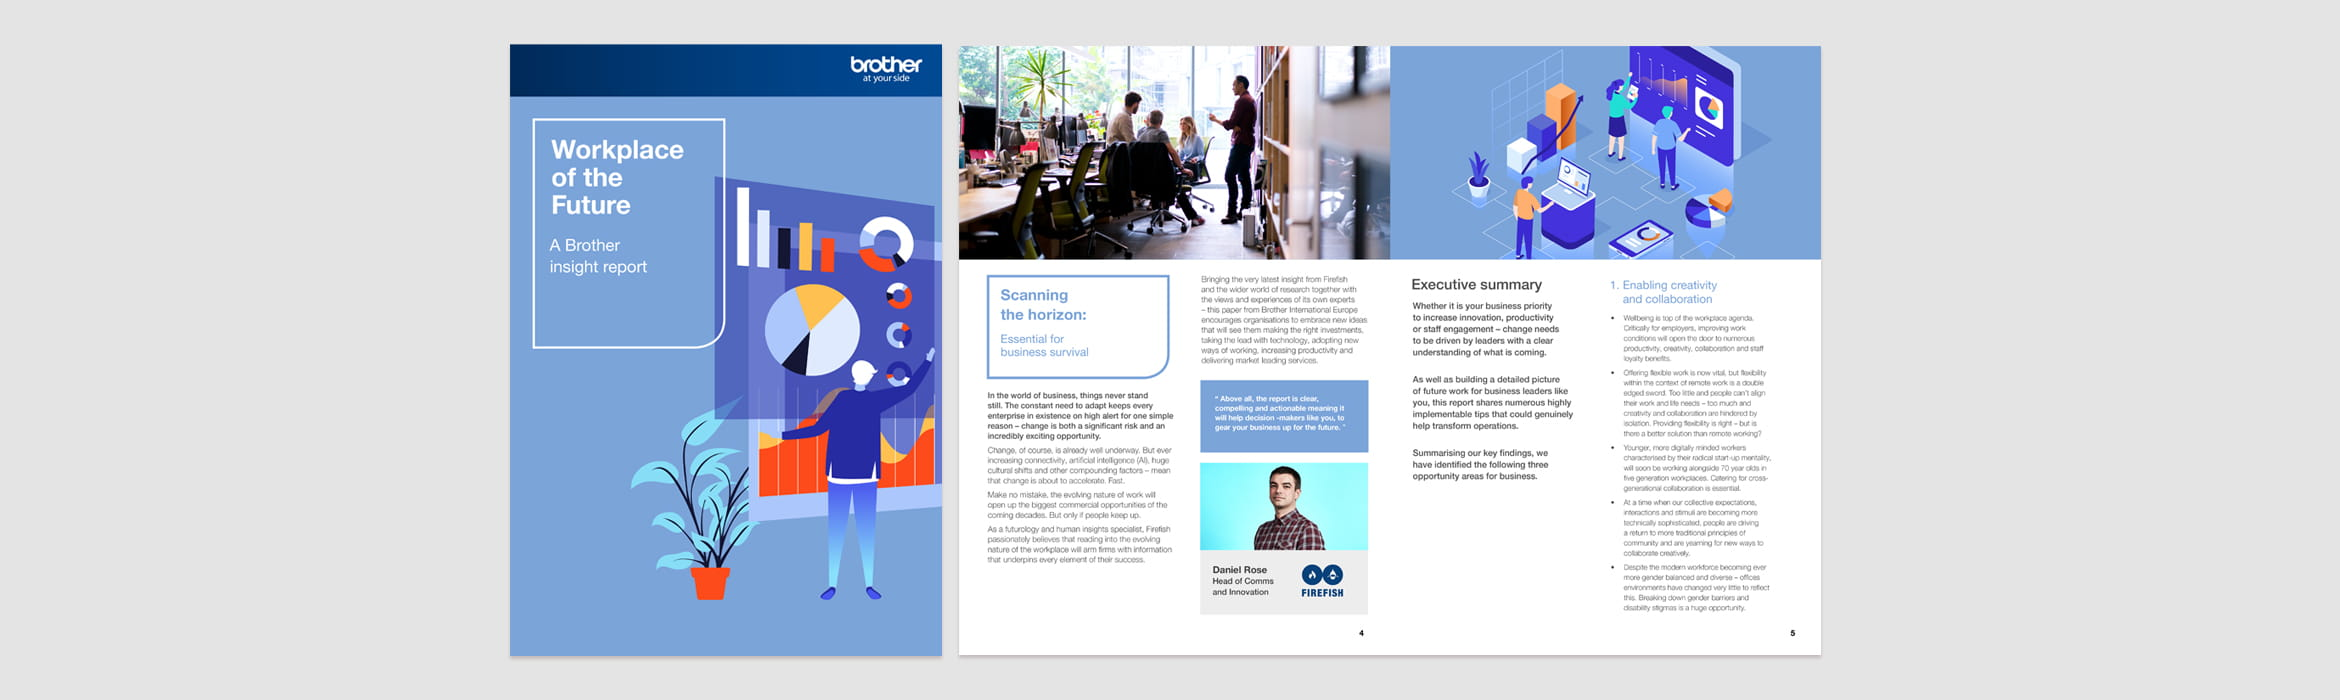 workplace-of-the-future-big-rock-pdf-preview